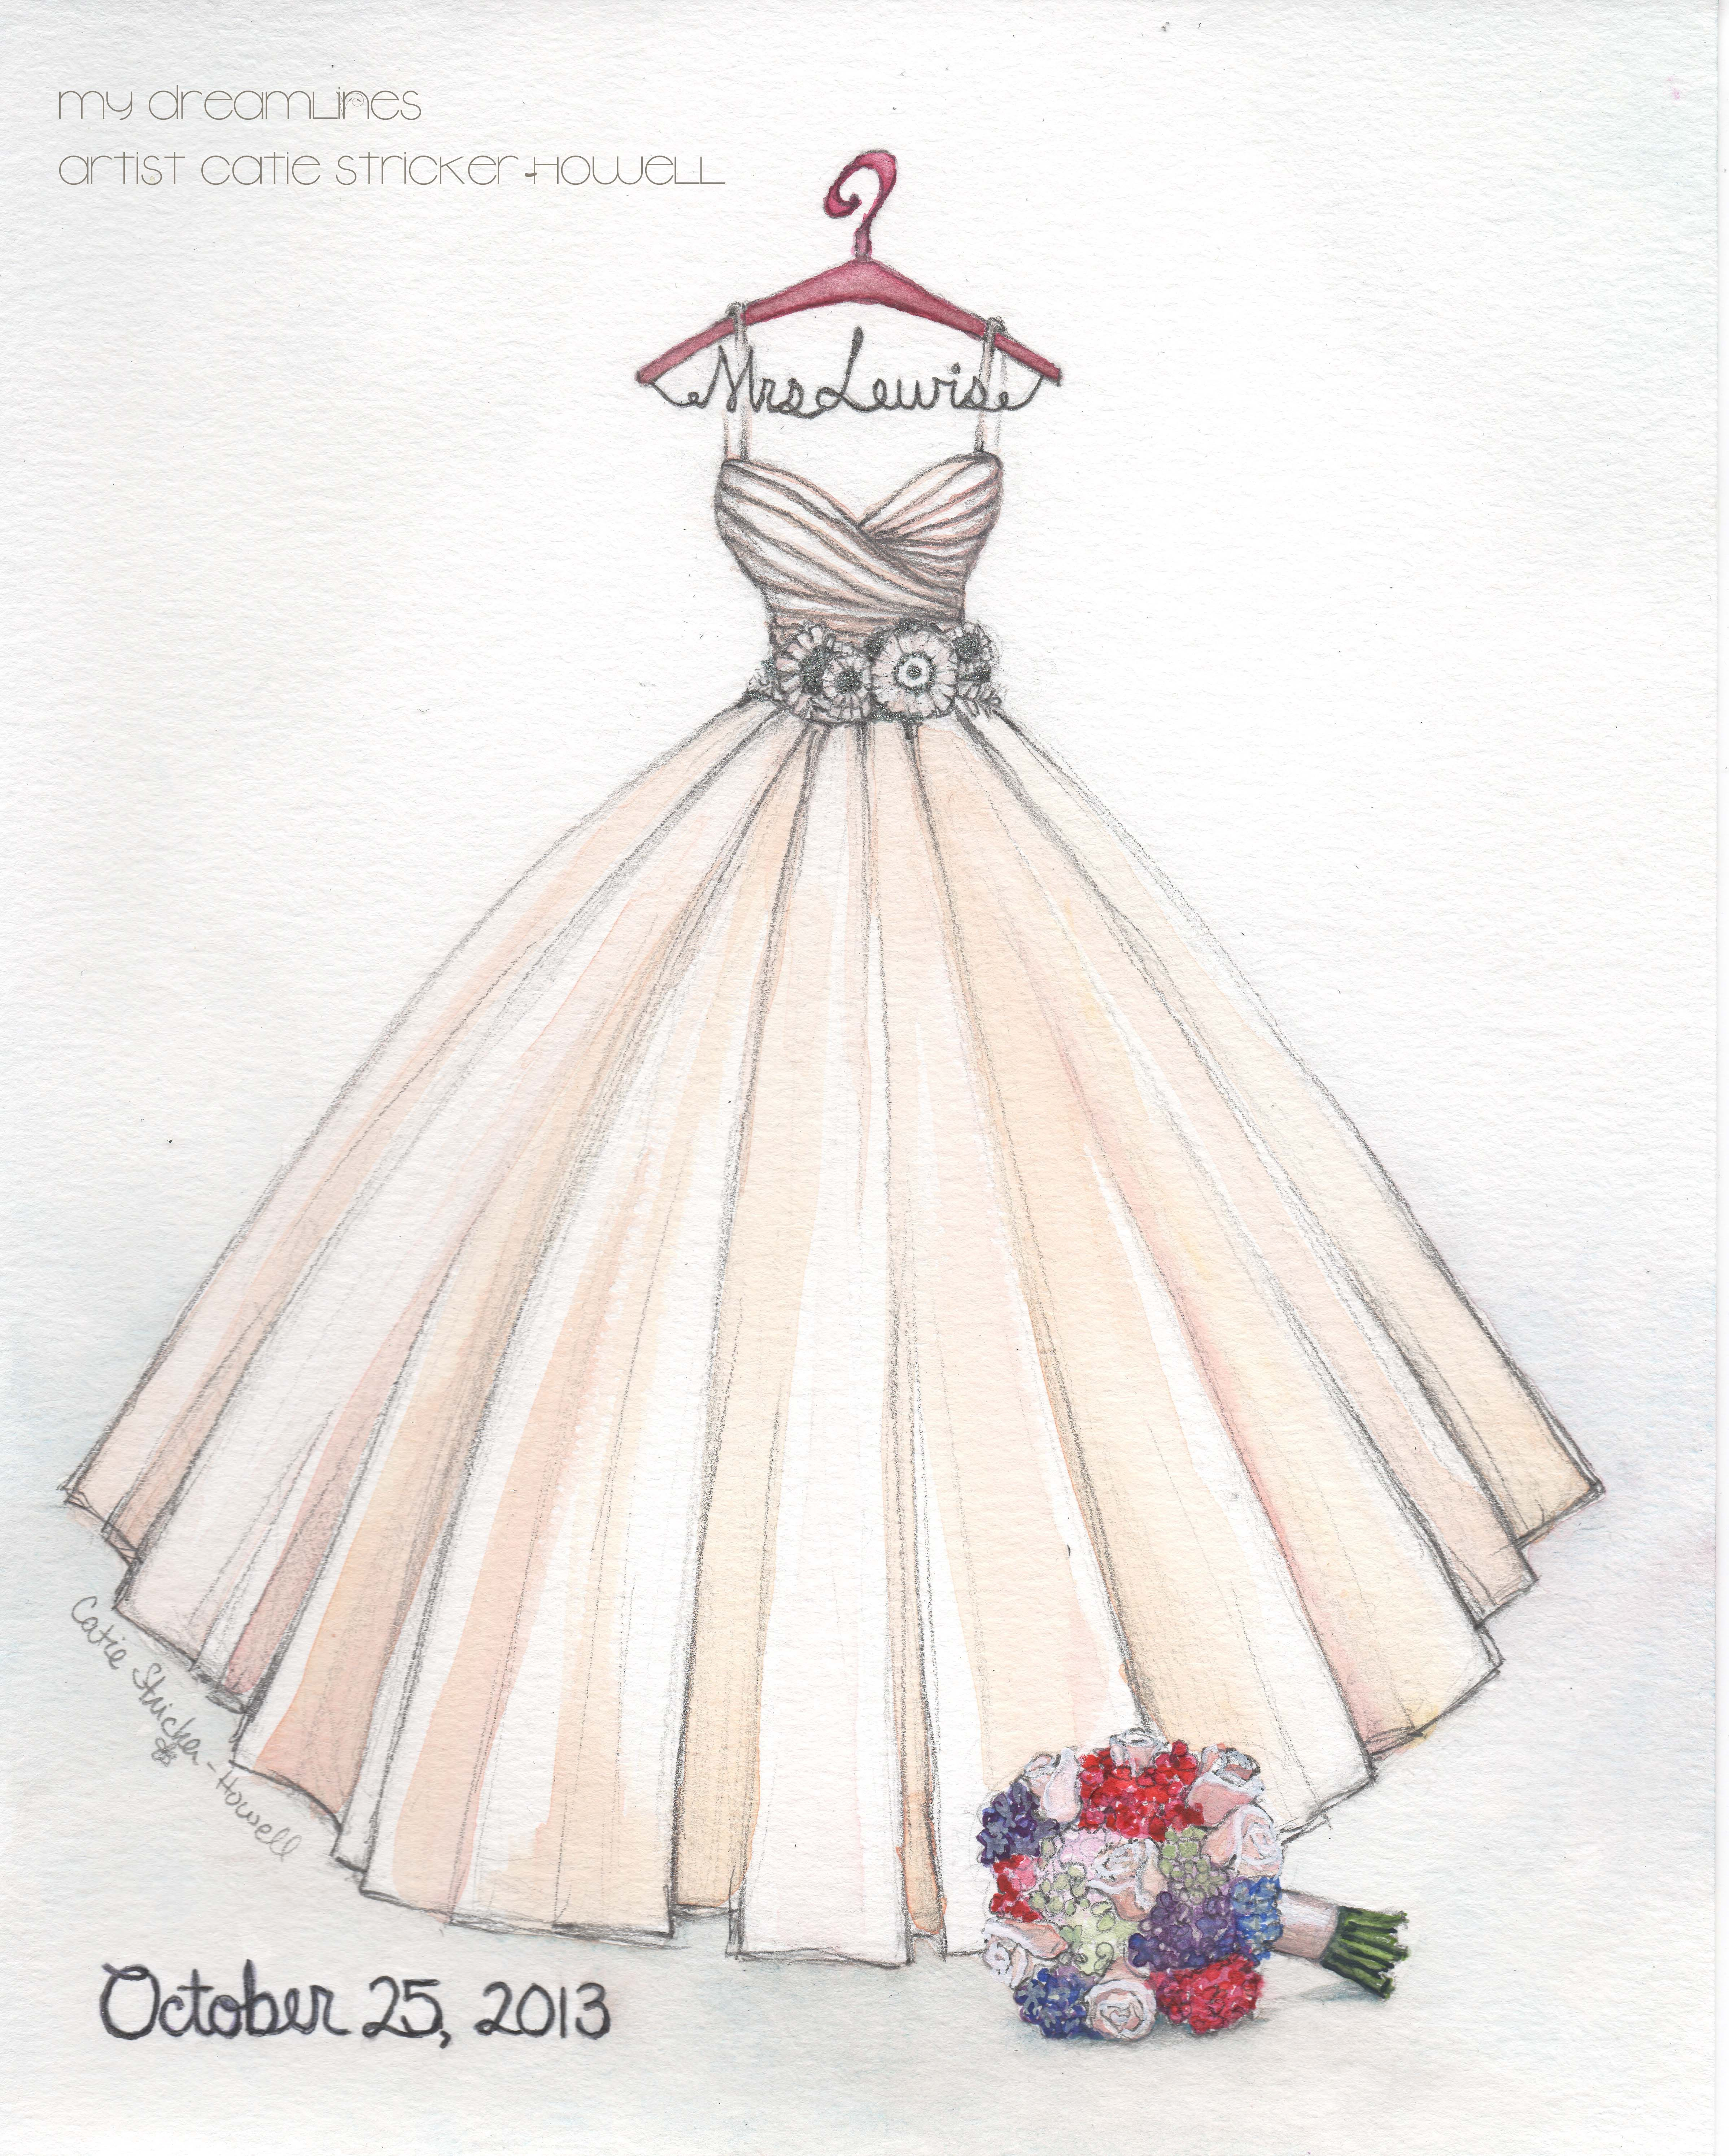 Sketched This Larzaro Gown For A Bride Love This Fun Sherbet Color For A Wedding Gown Dress Design Sketches Wedding Dress Drawings Fashion Drawing Dresses